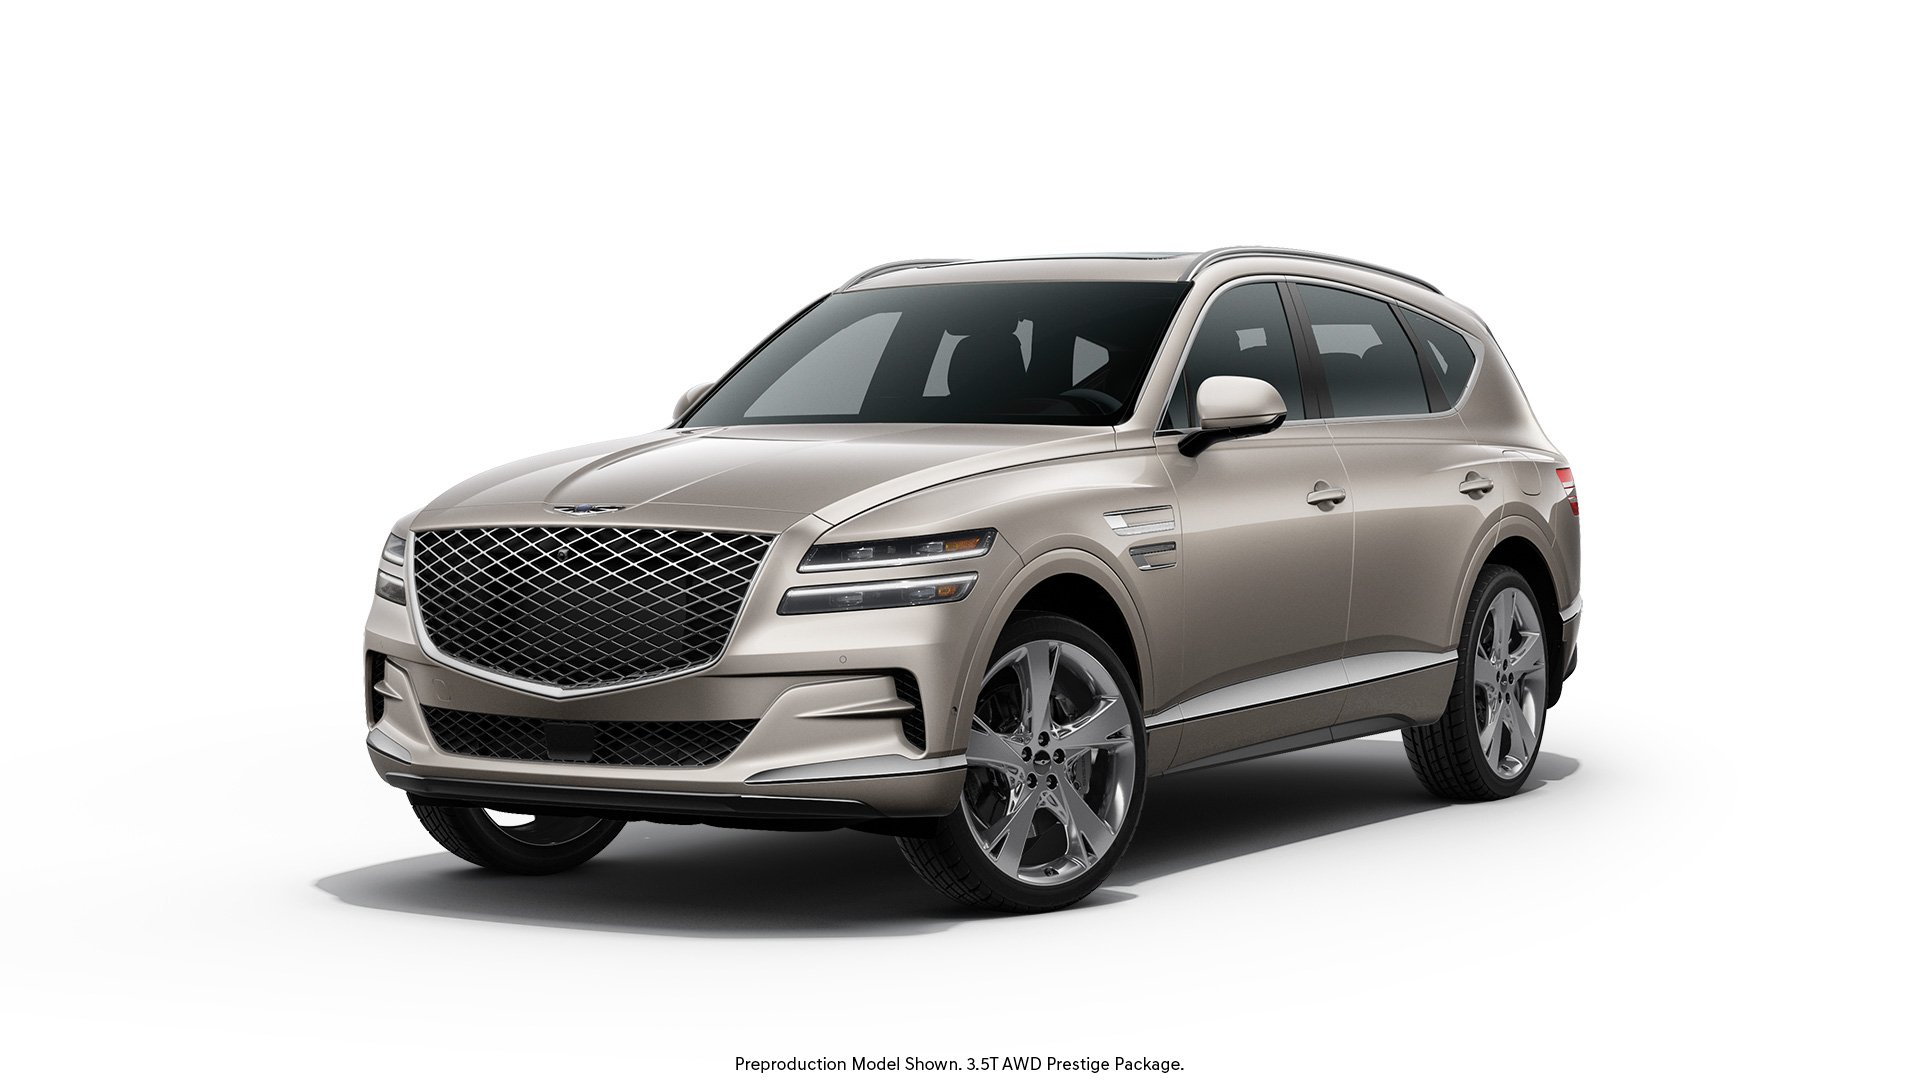 2021 Genesis Gv80 Color Options Genesis Gv80 Forum Pricing